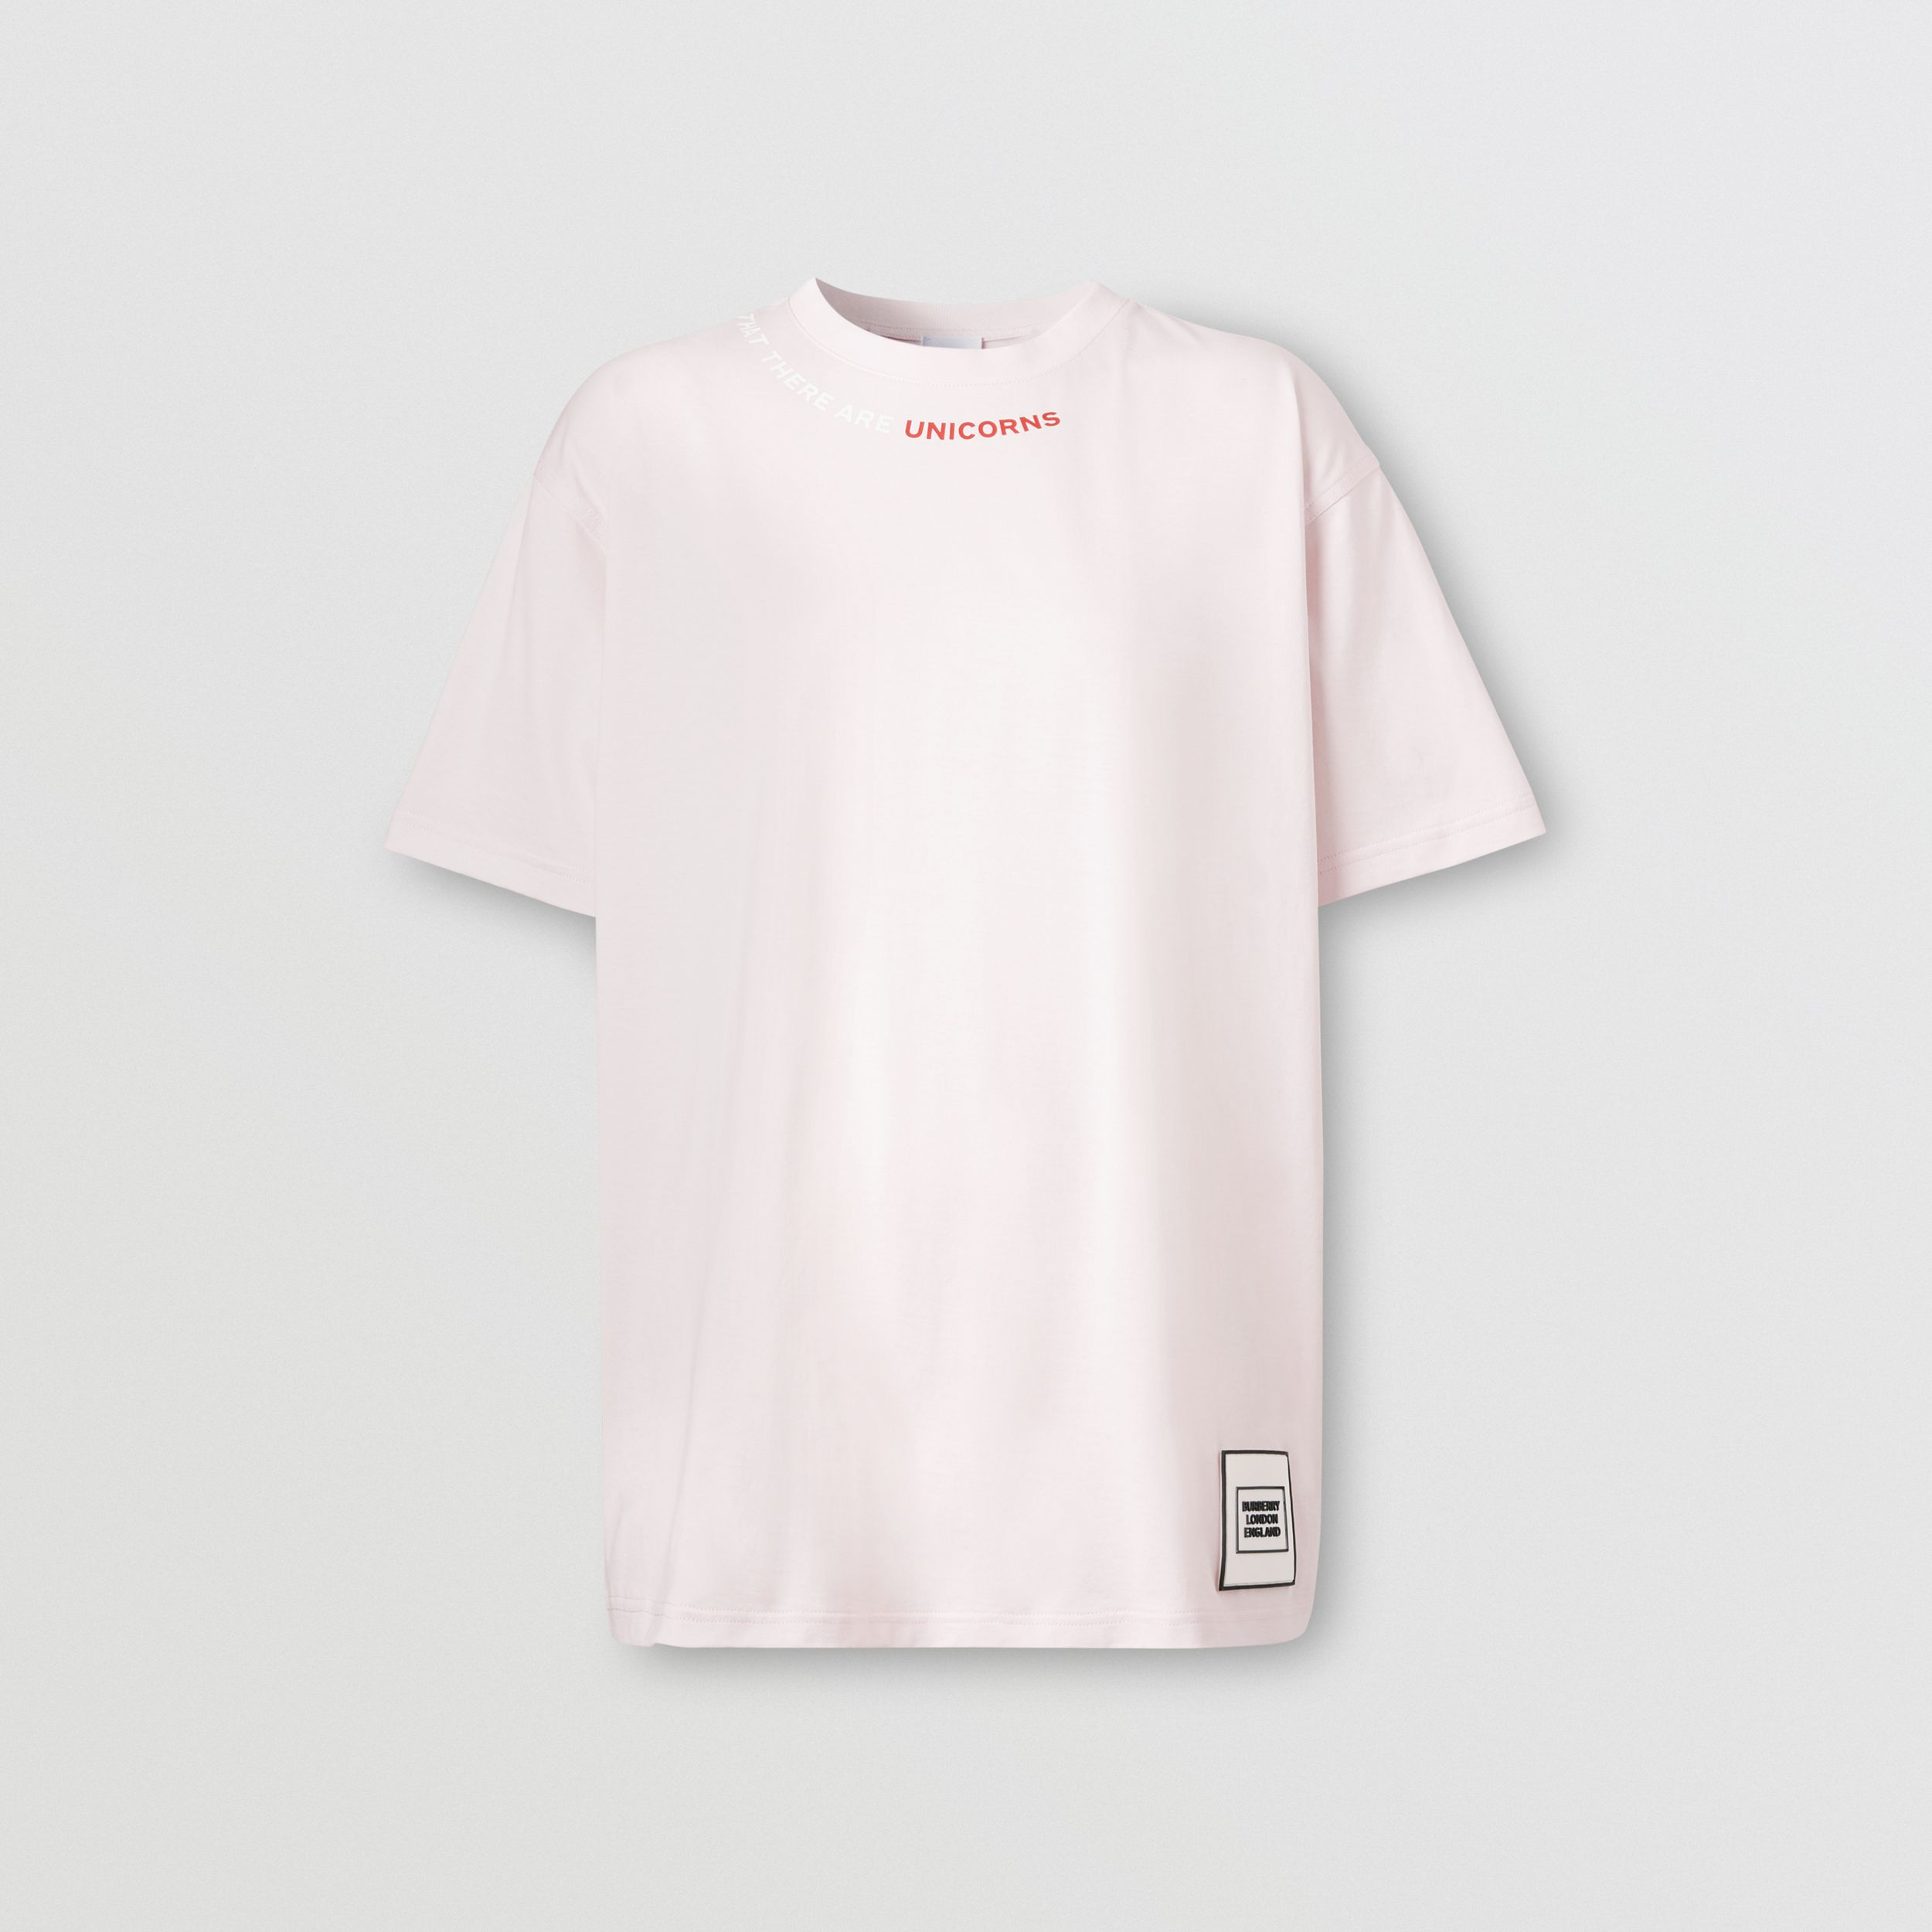 Quote Print Cotton Oversized T-shirt in Pale Pink - Women | Burberry - 4